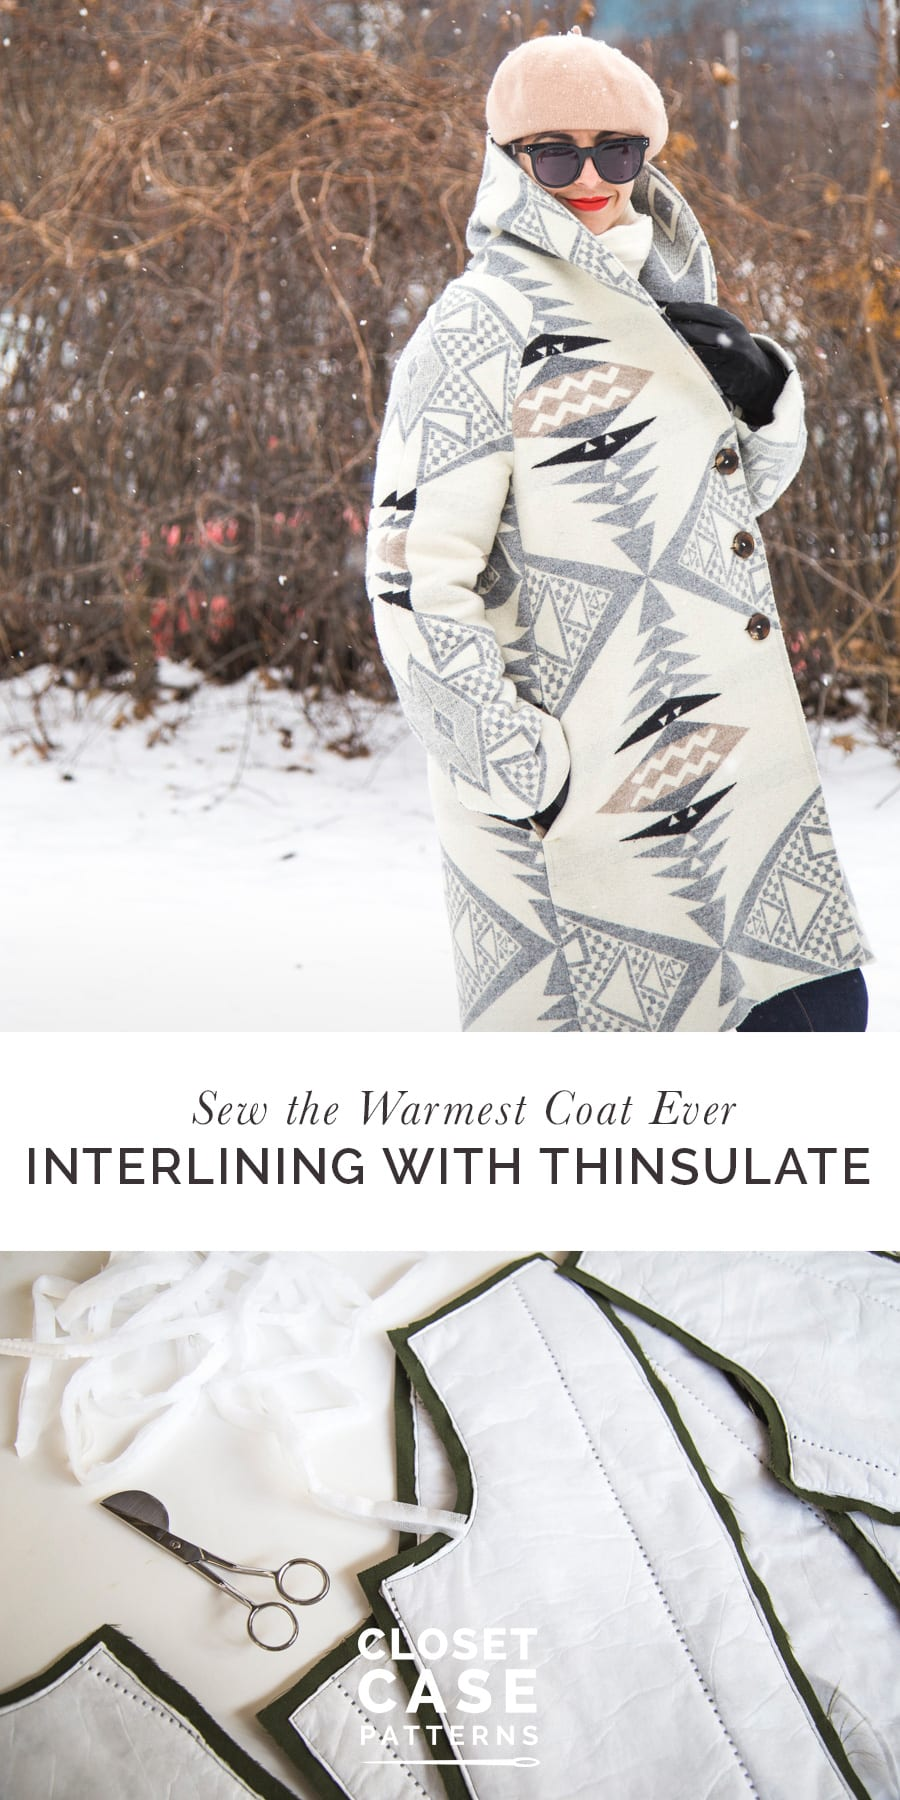 Sew the warmest coat EVER - Interlining with Thinsulate // Sewing tutorial by Closet Case Patterns